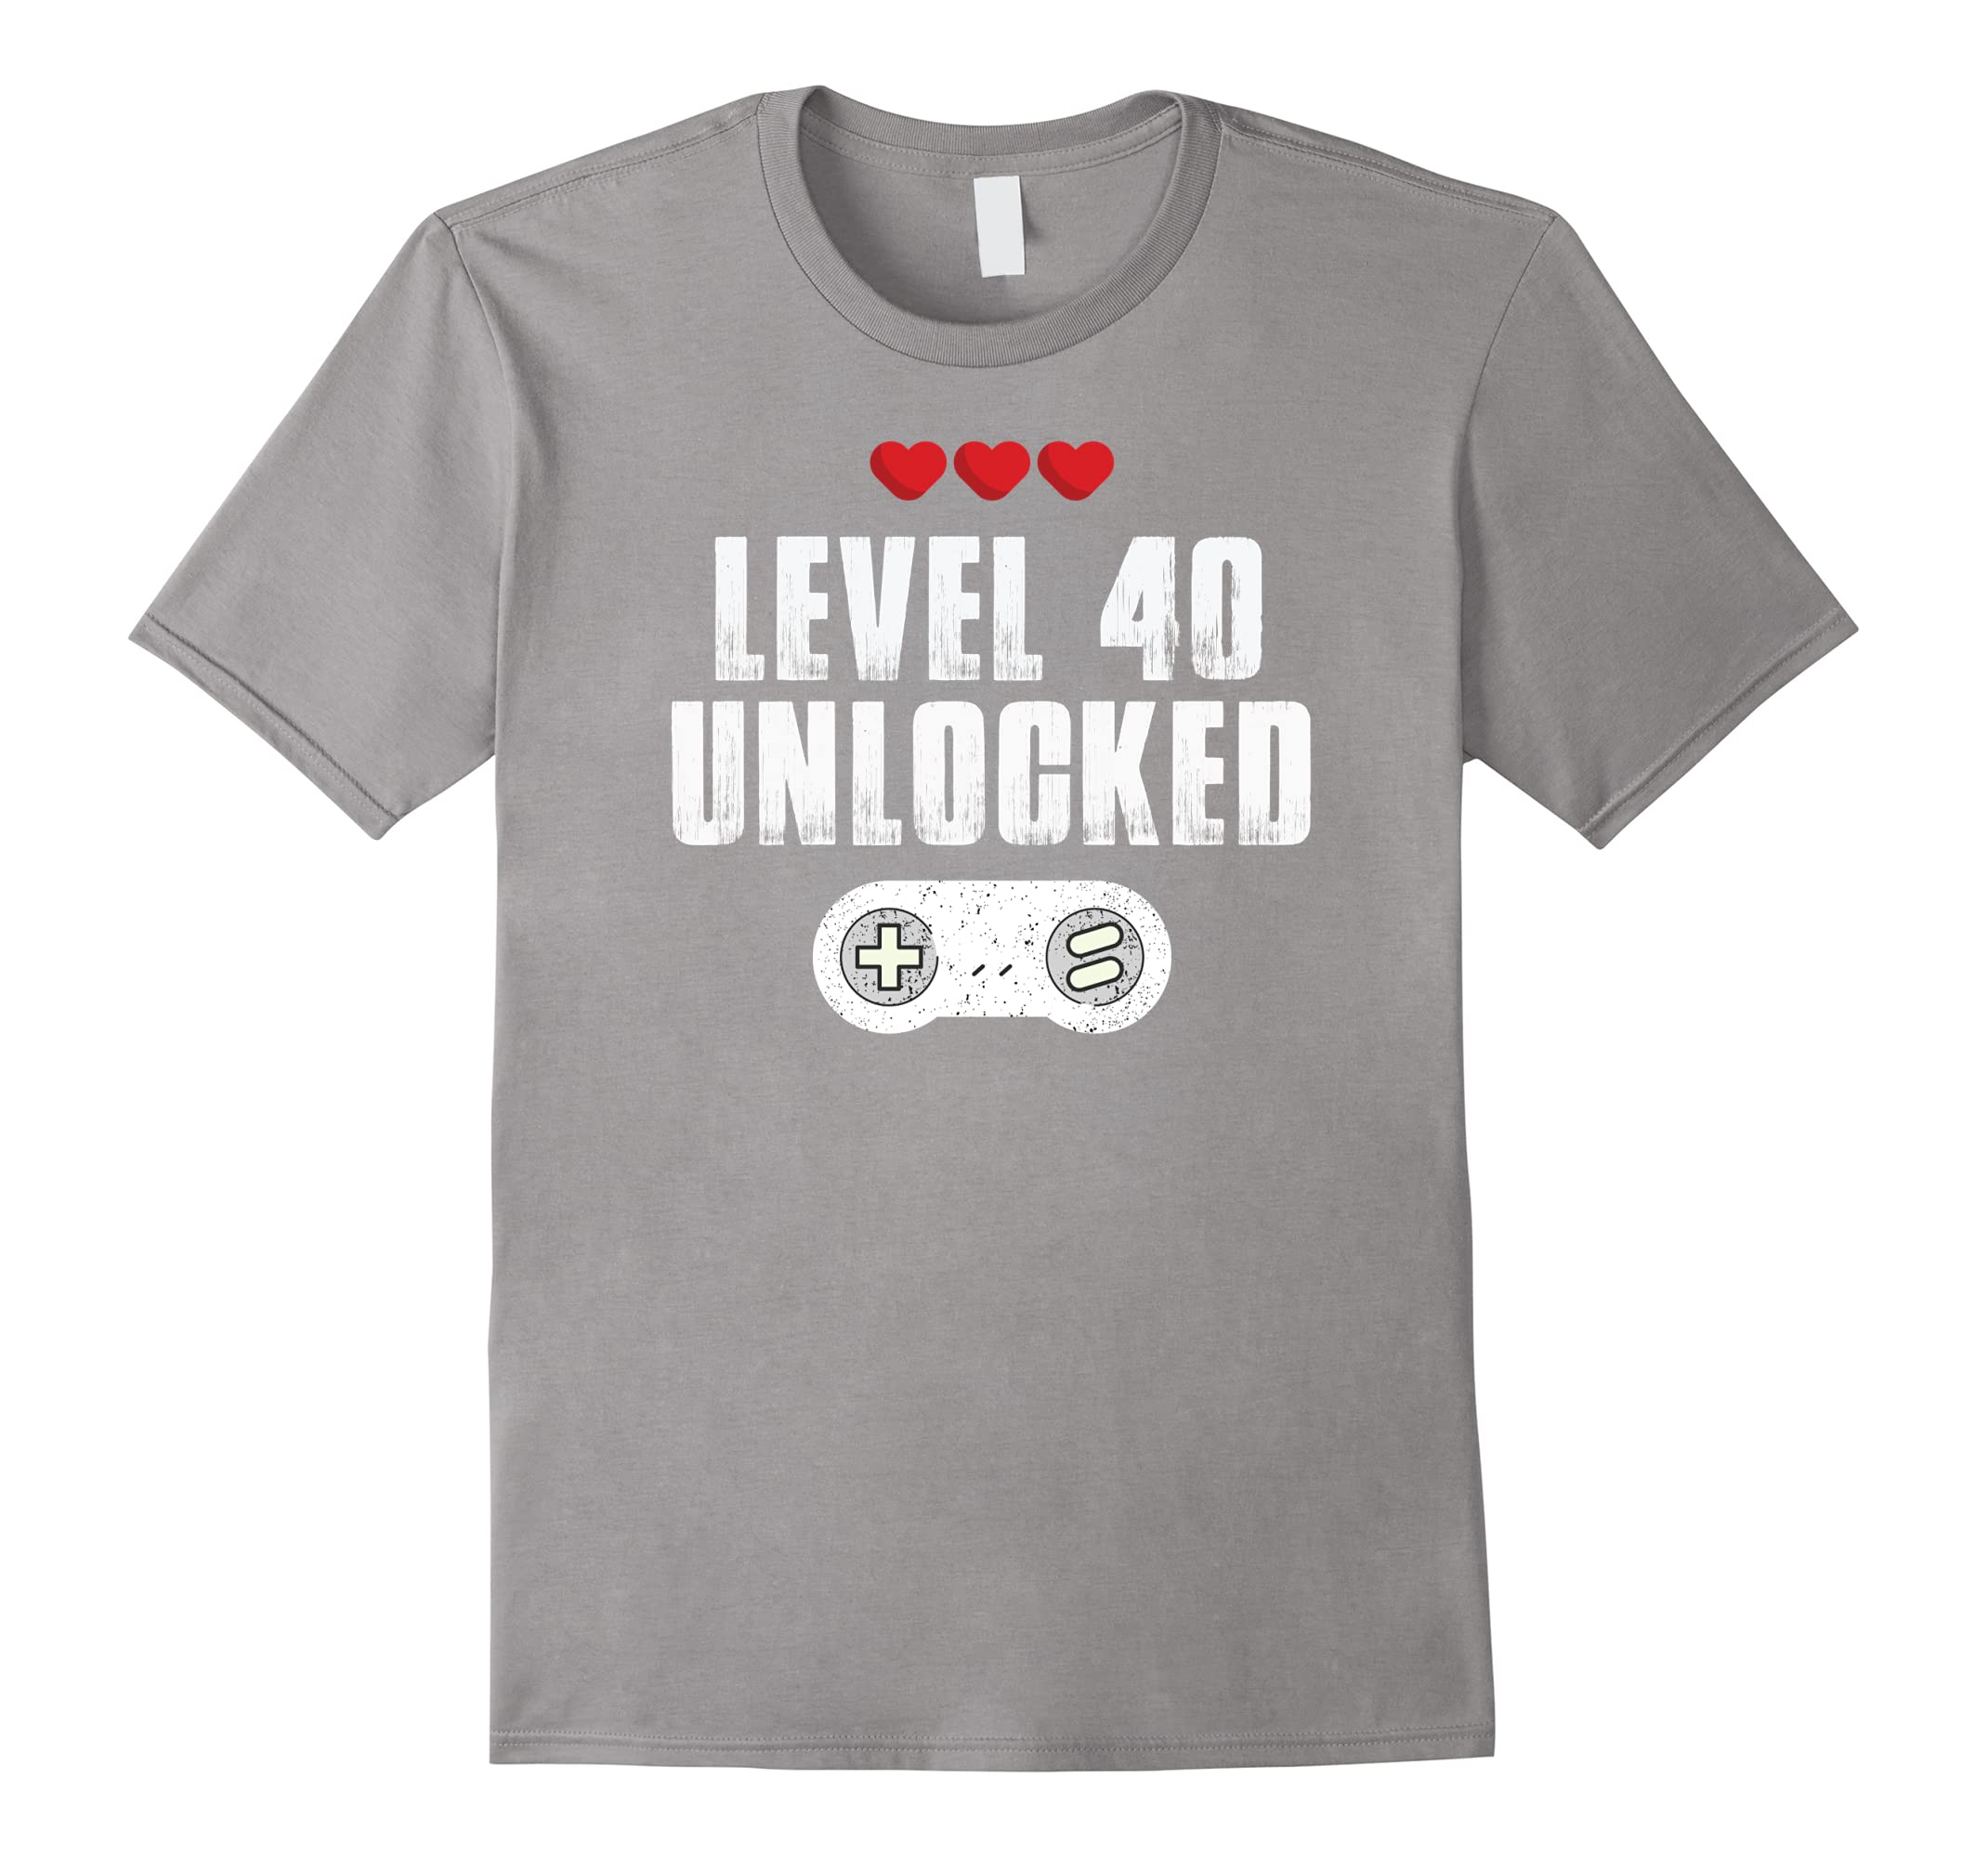 46848114 40th Birthday Gift for Men tshirt Gamer, Level 40 Unlocked-ah my shirt one